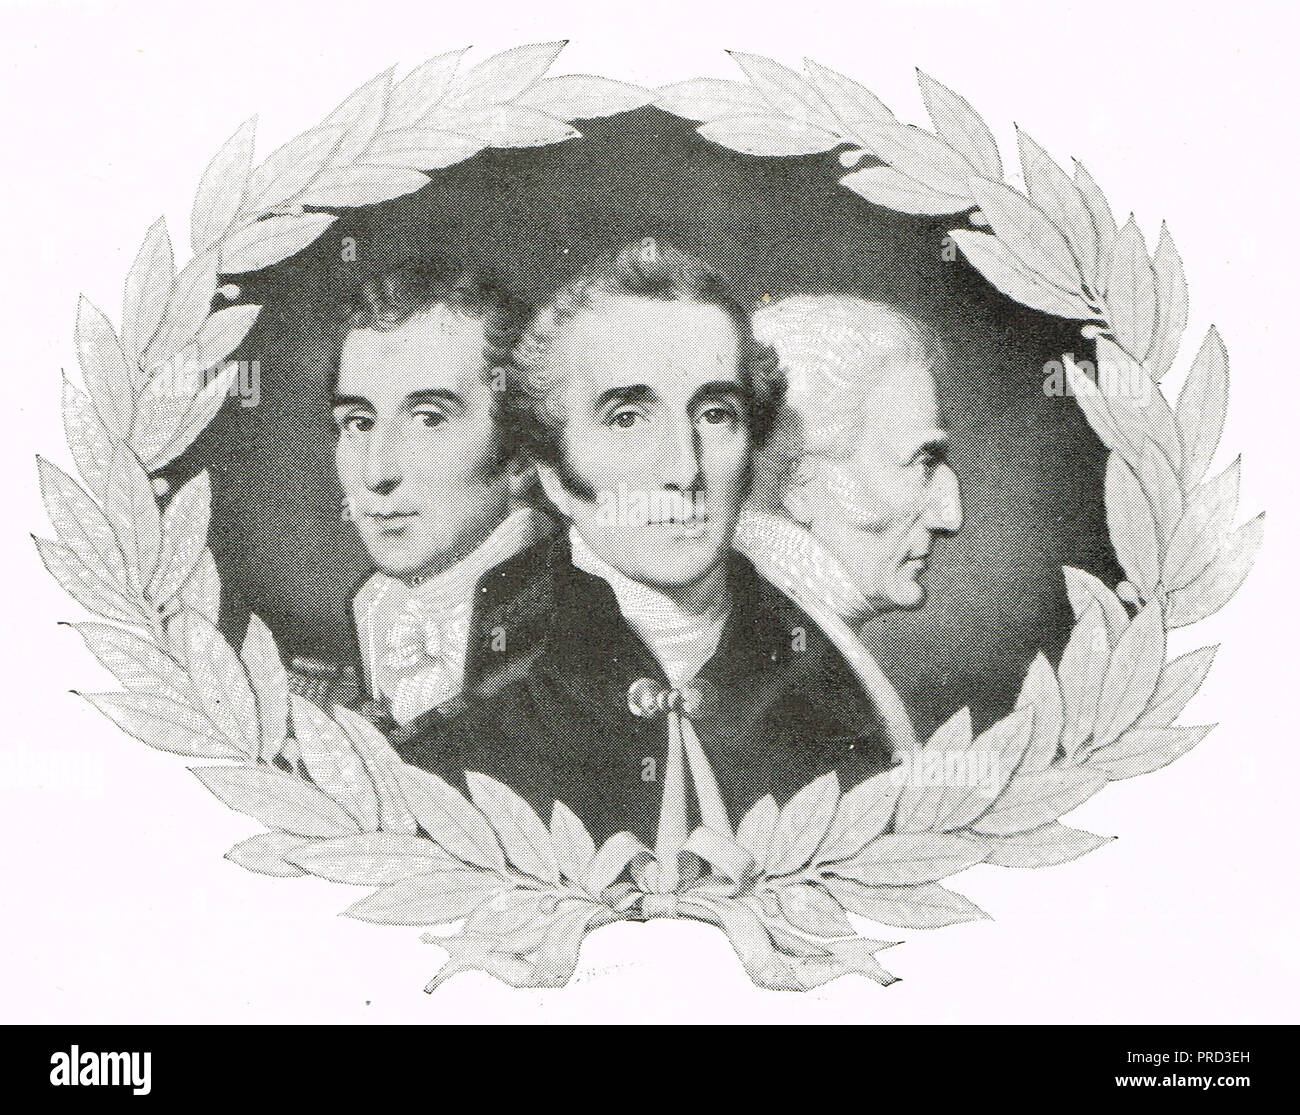 Three stages in the life of the Duke of Wellington. India, the Peninsular war, and the house of Lords - Stock Image